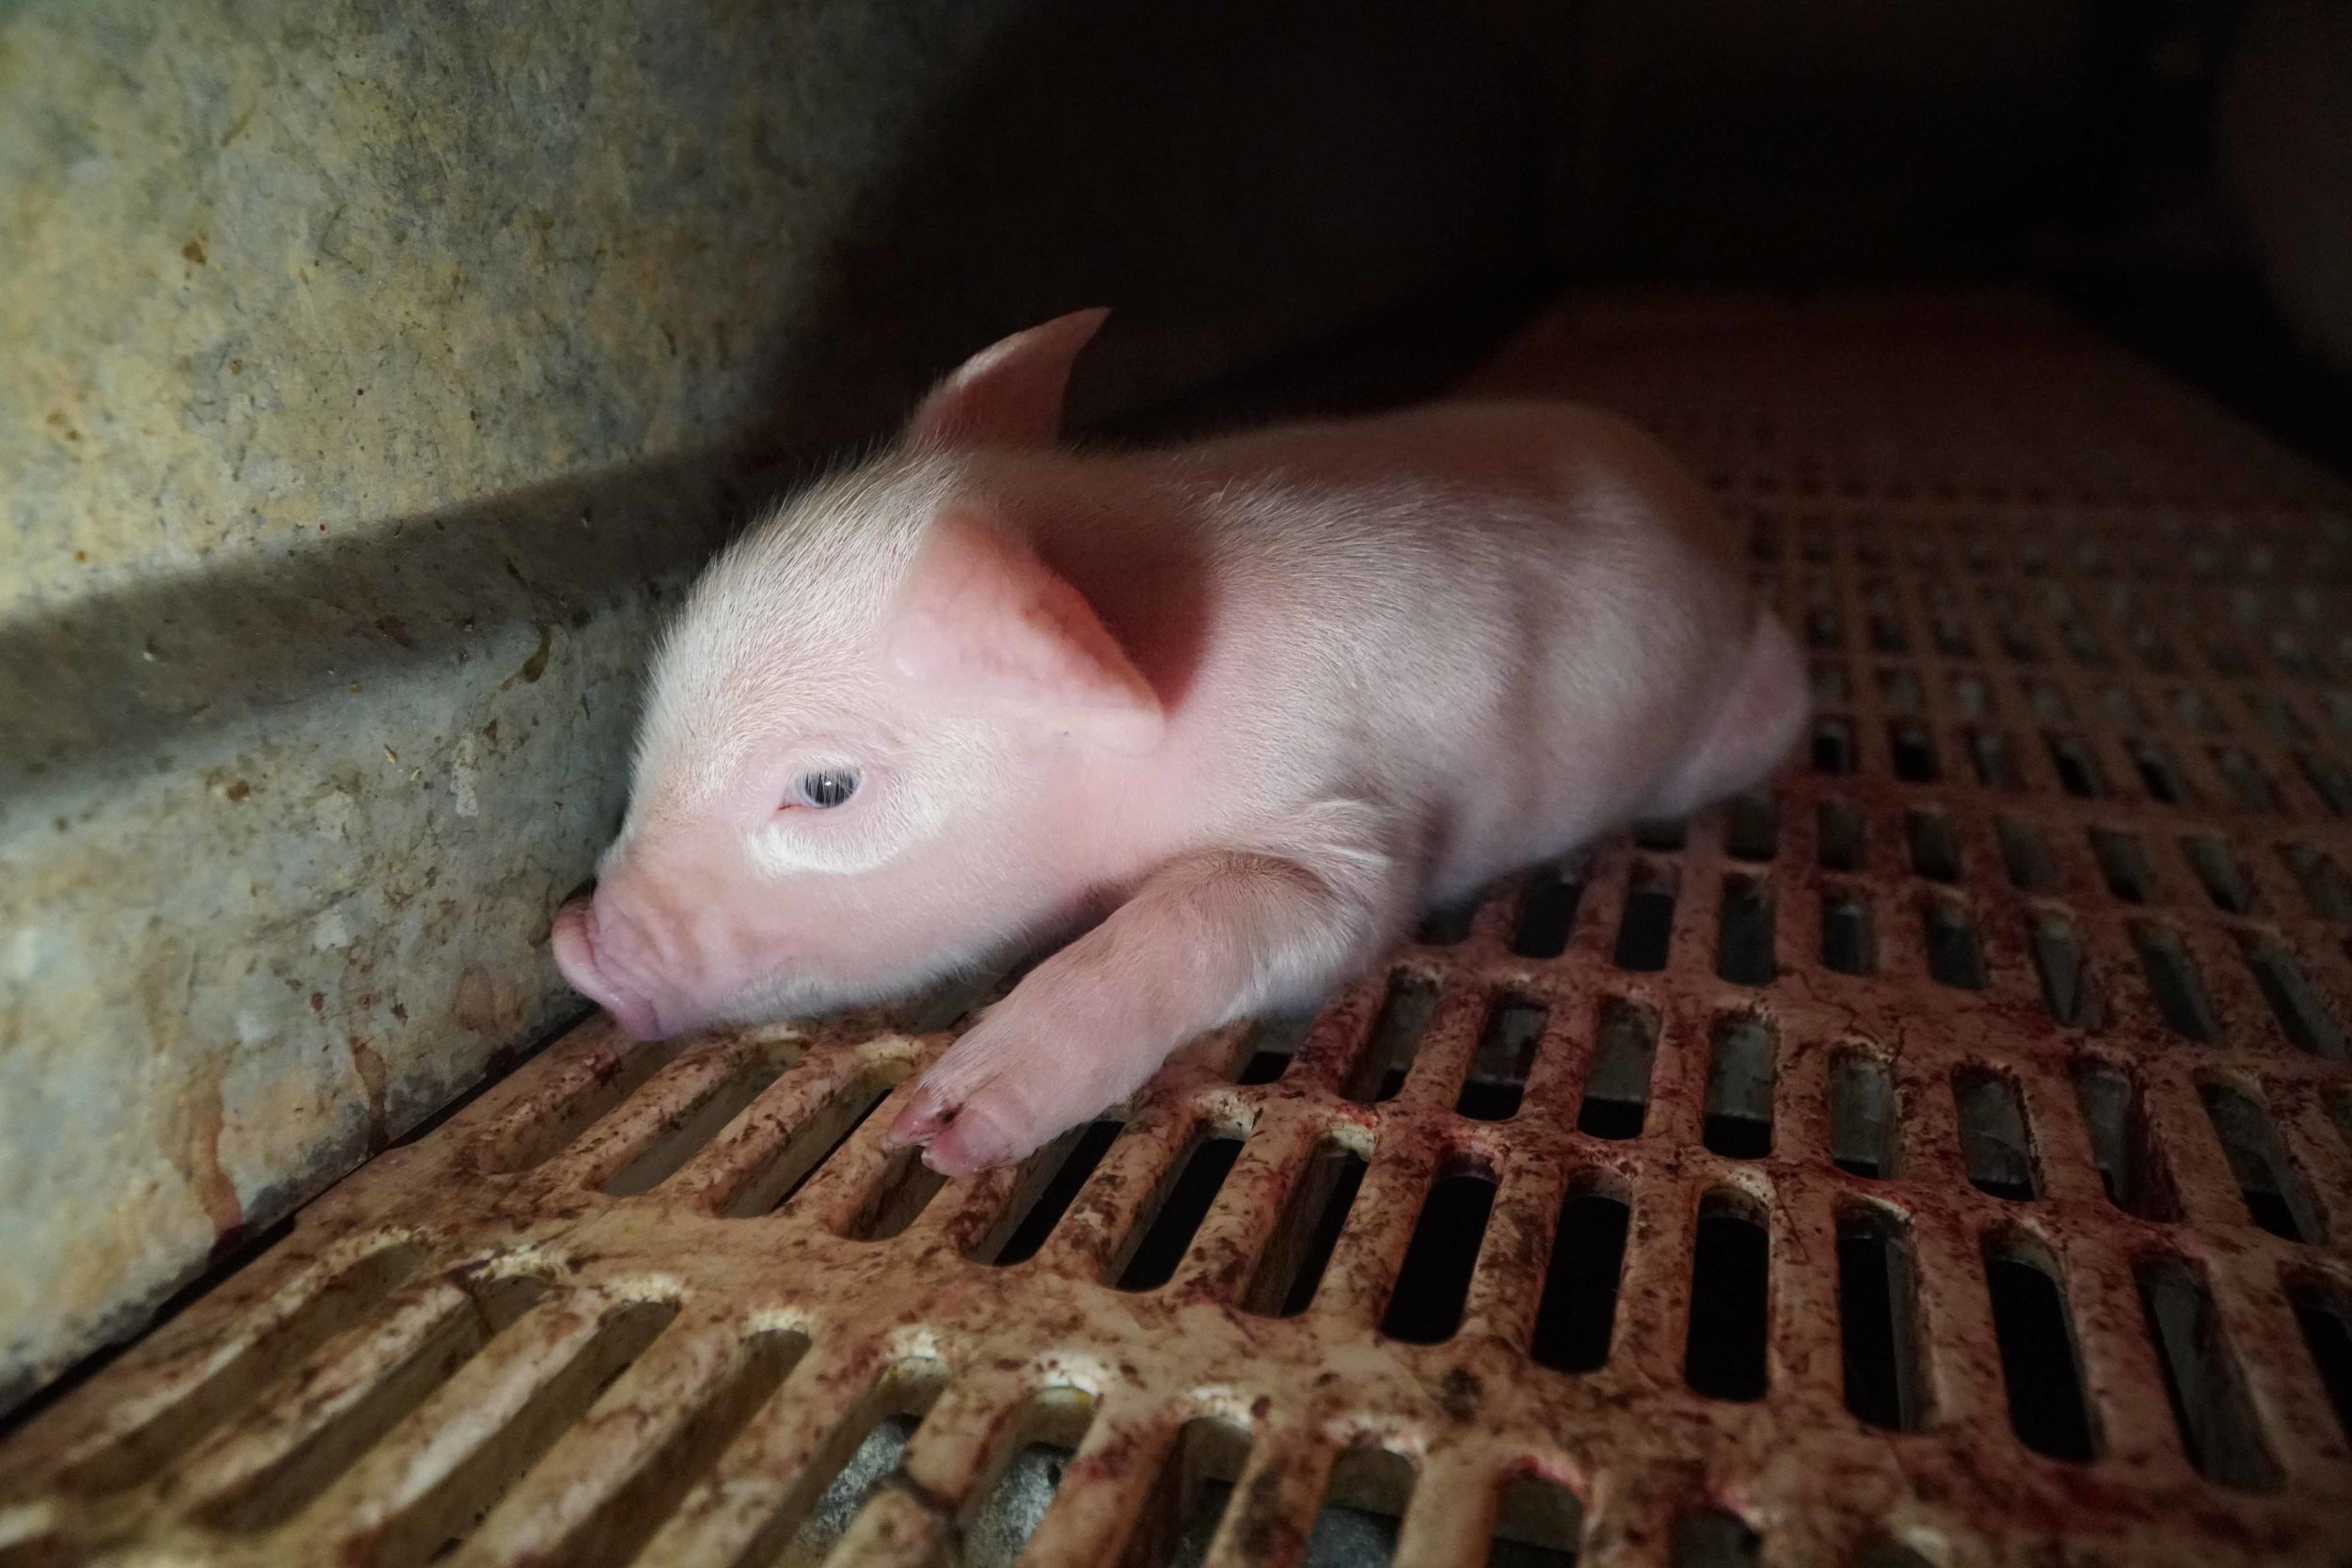 Gestation crates mean that piglets like this one are often separated and can't be cared for by their mother.